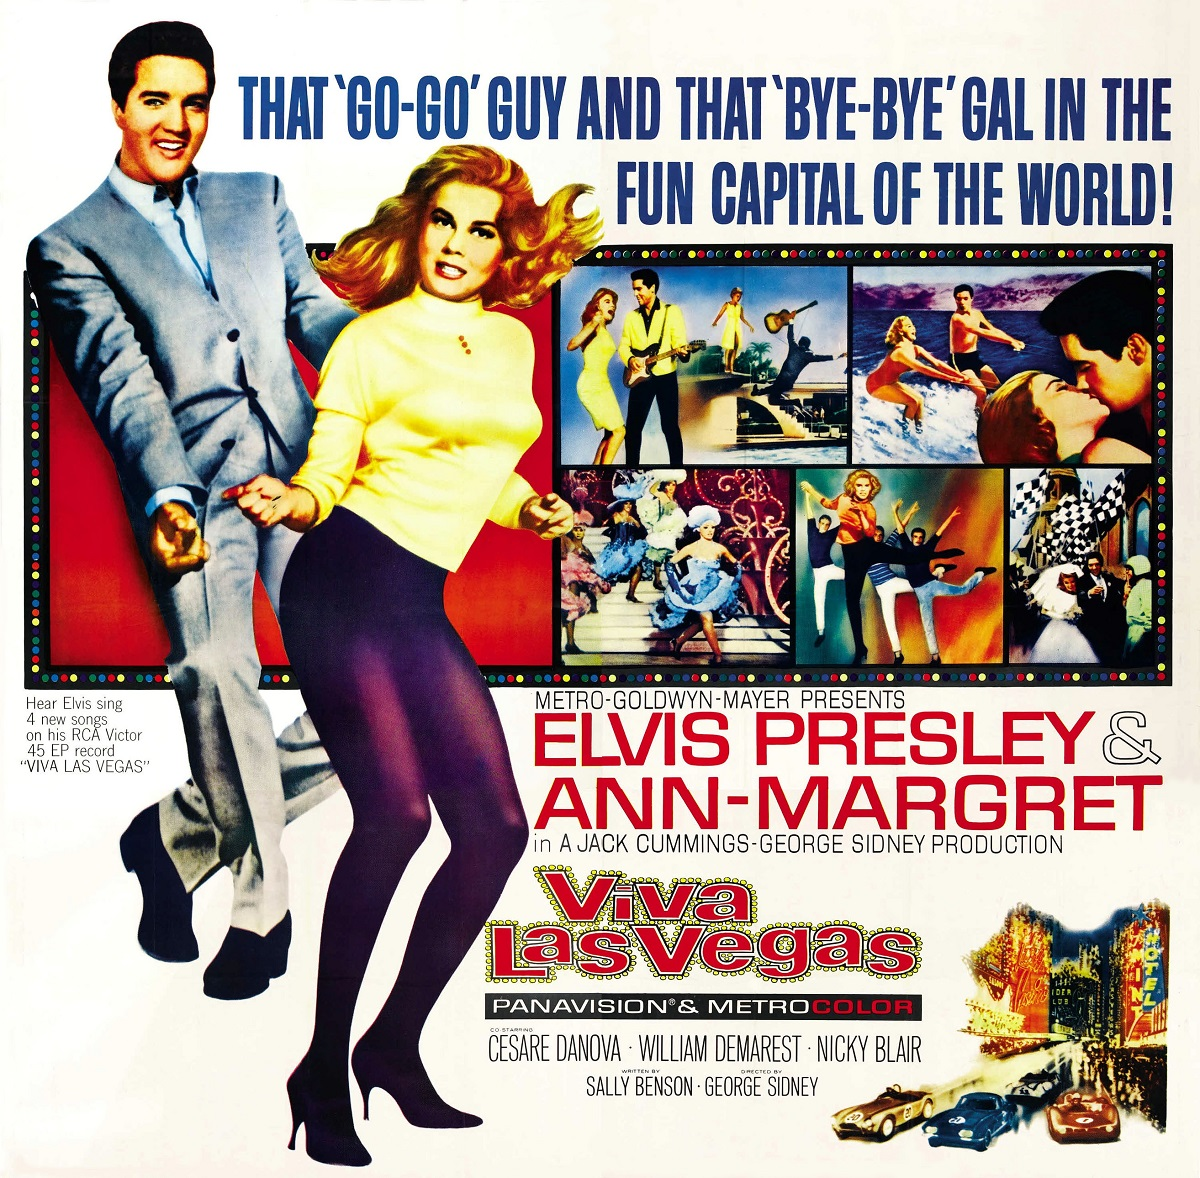 'Viva Las Vegas' poster featuring Ann-Margret and Elvis Presley